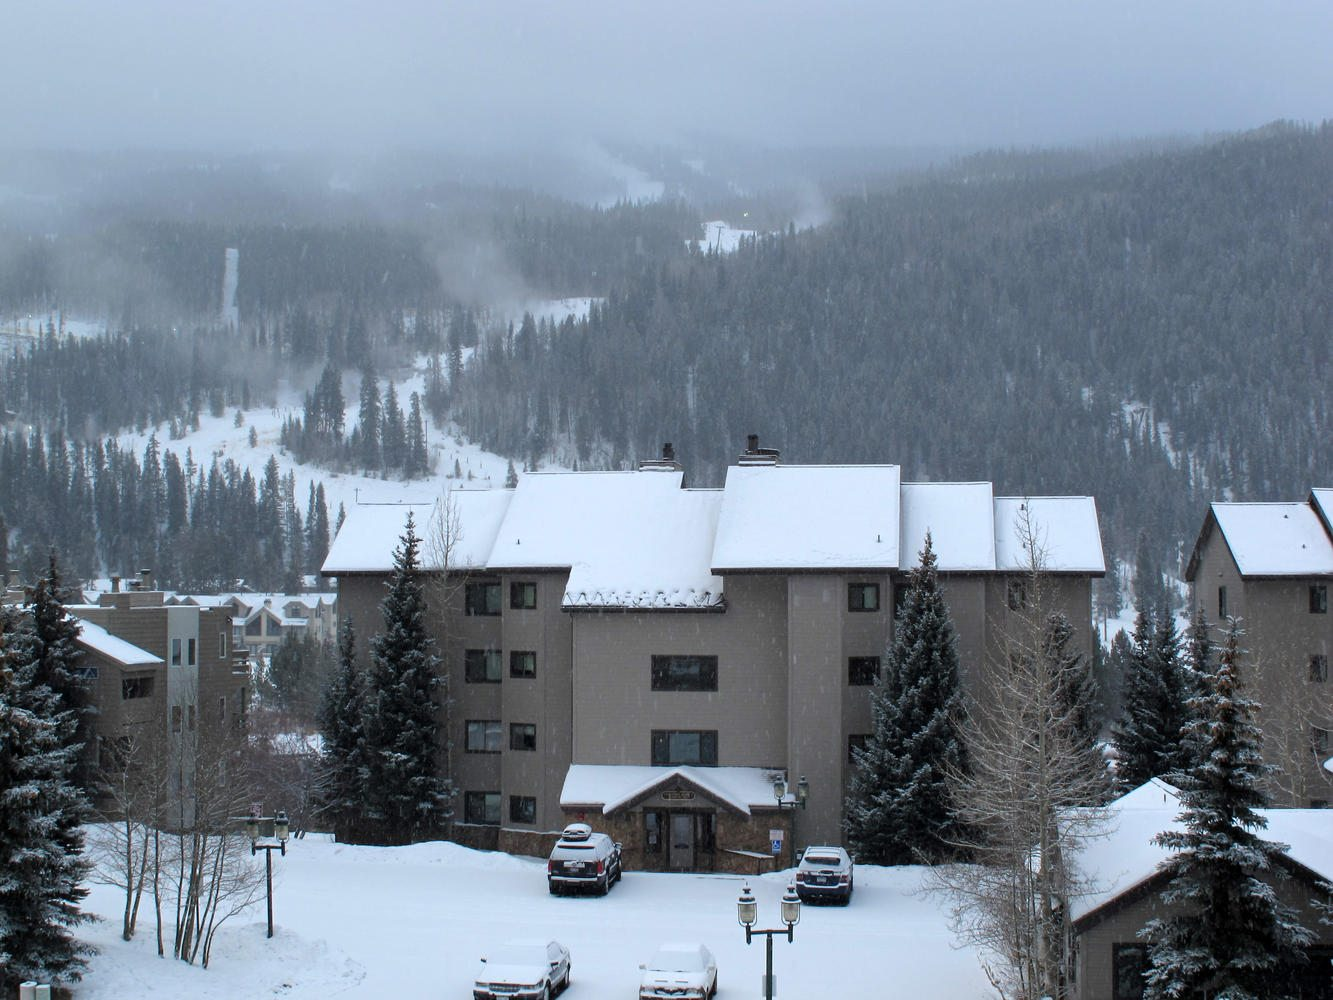 Cinnamon Ridge, Keystone Ski Area